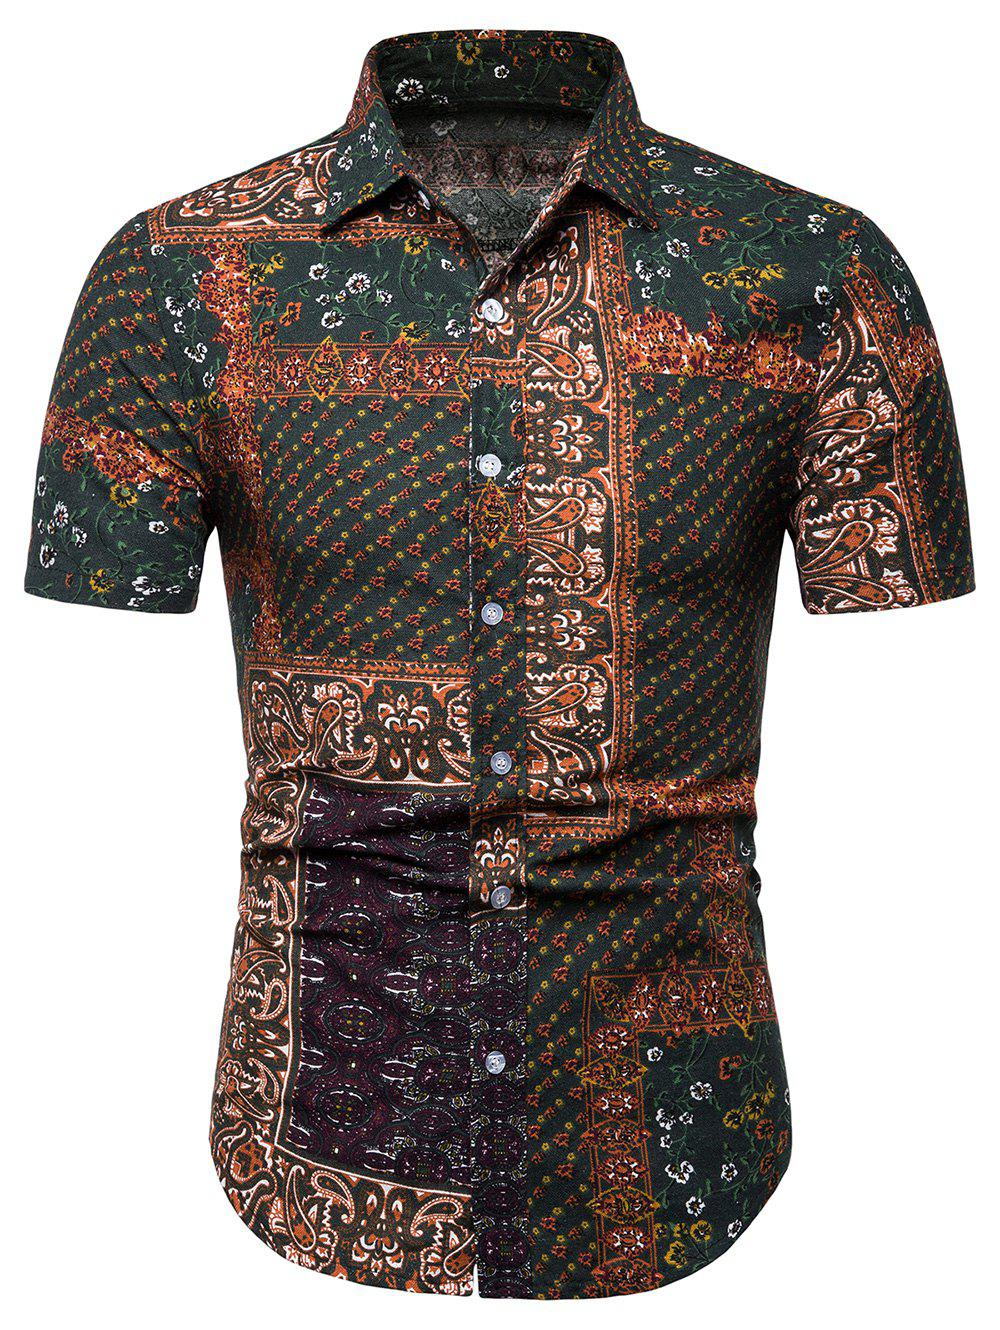 Fancy Button Up Paisley Floral Print Casual Shirt